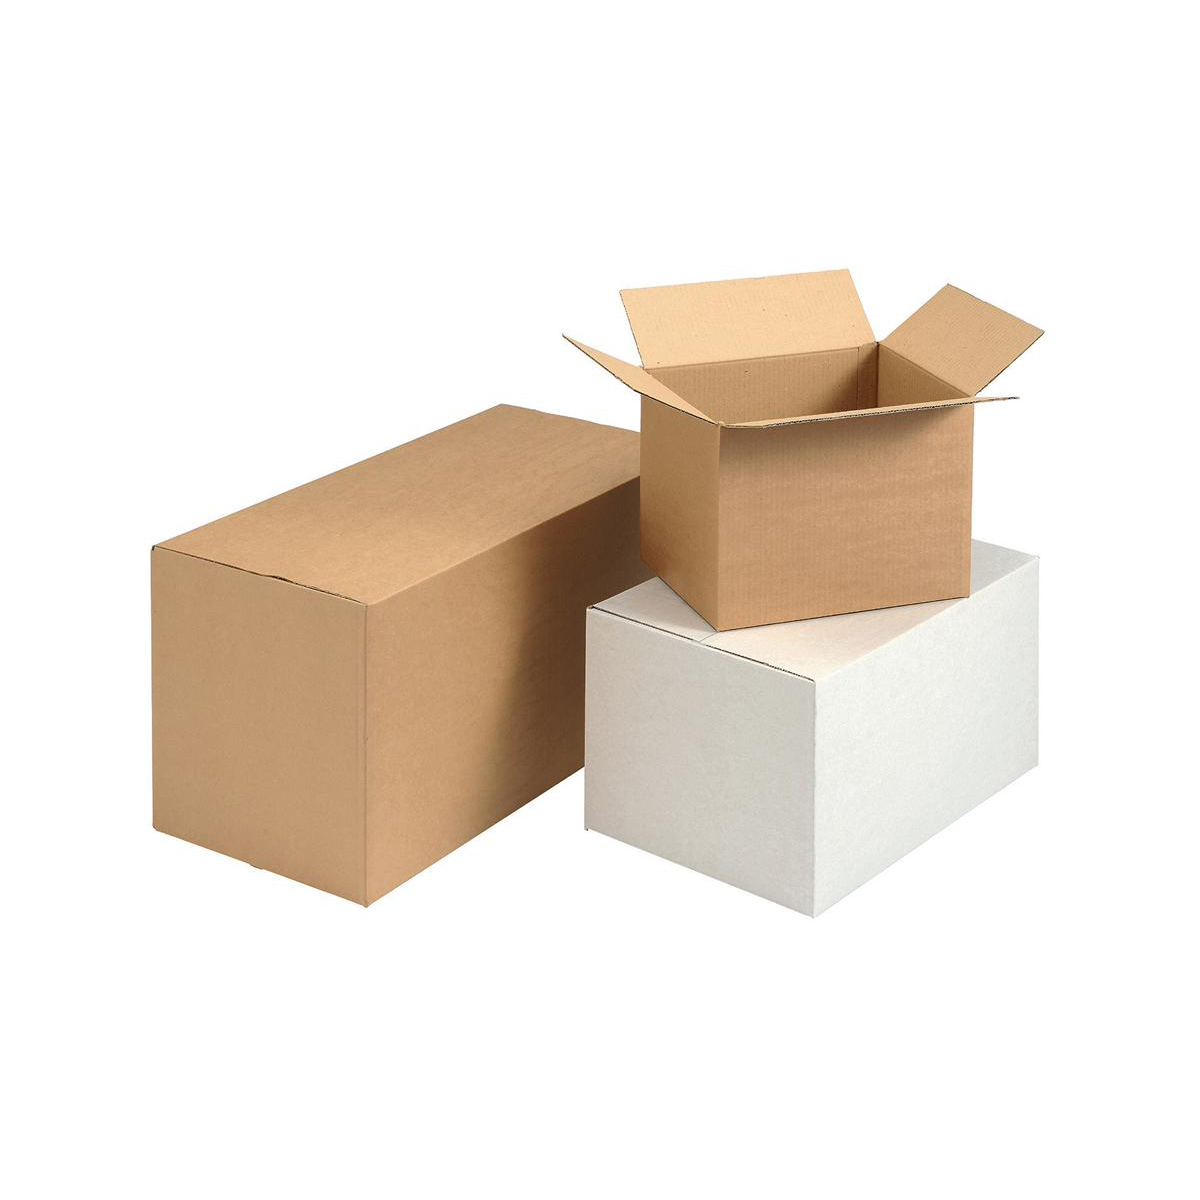 Packing Carton Single Wall Strong Flat Packed W457xD305xH248mm Brown Pack 10